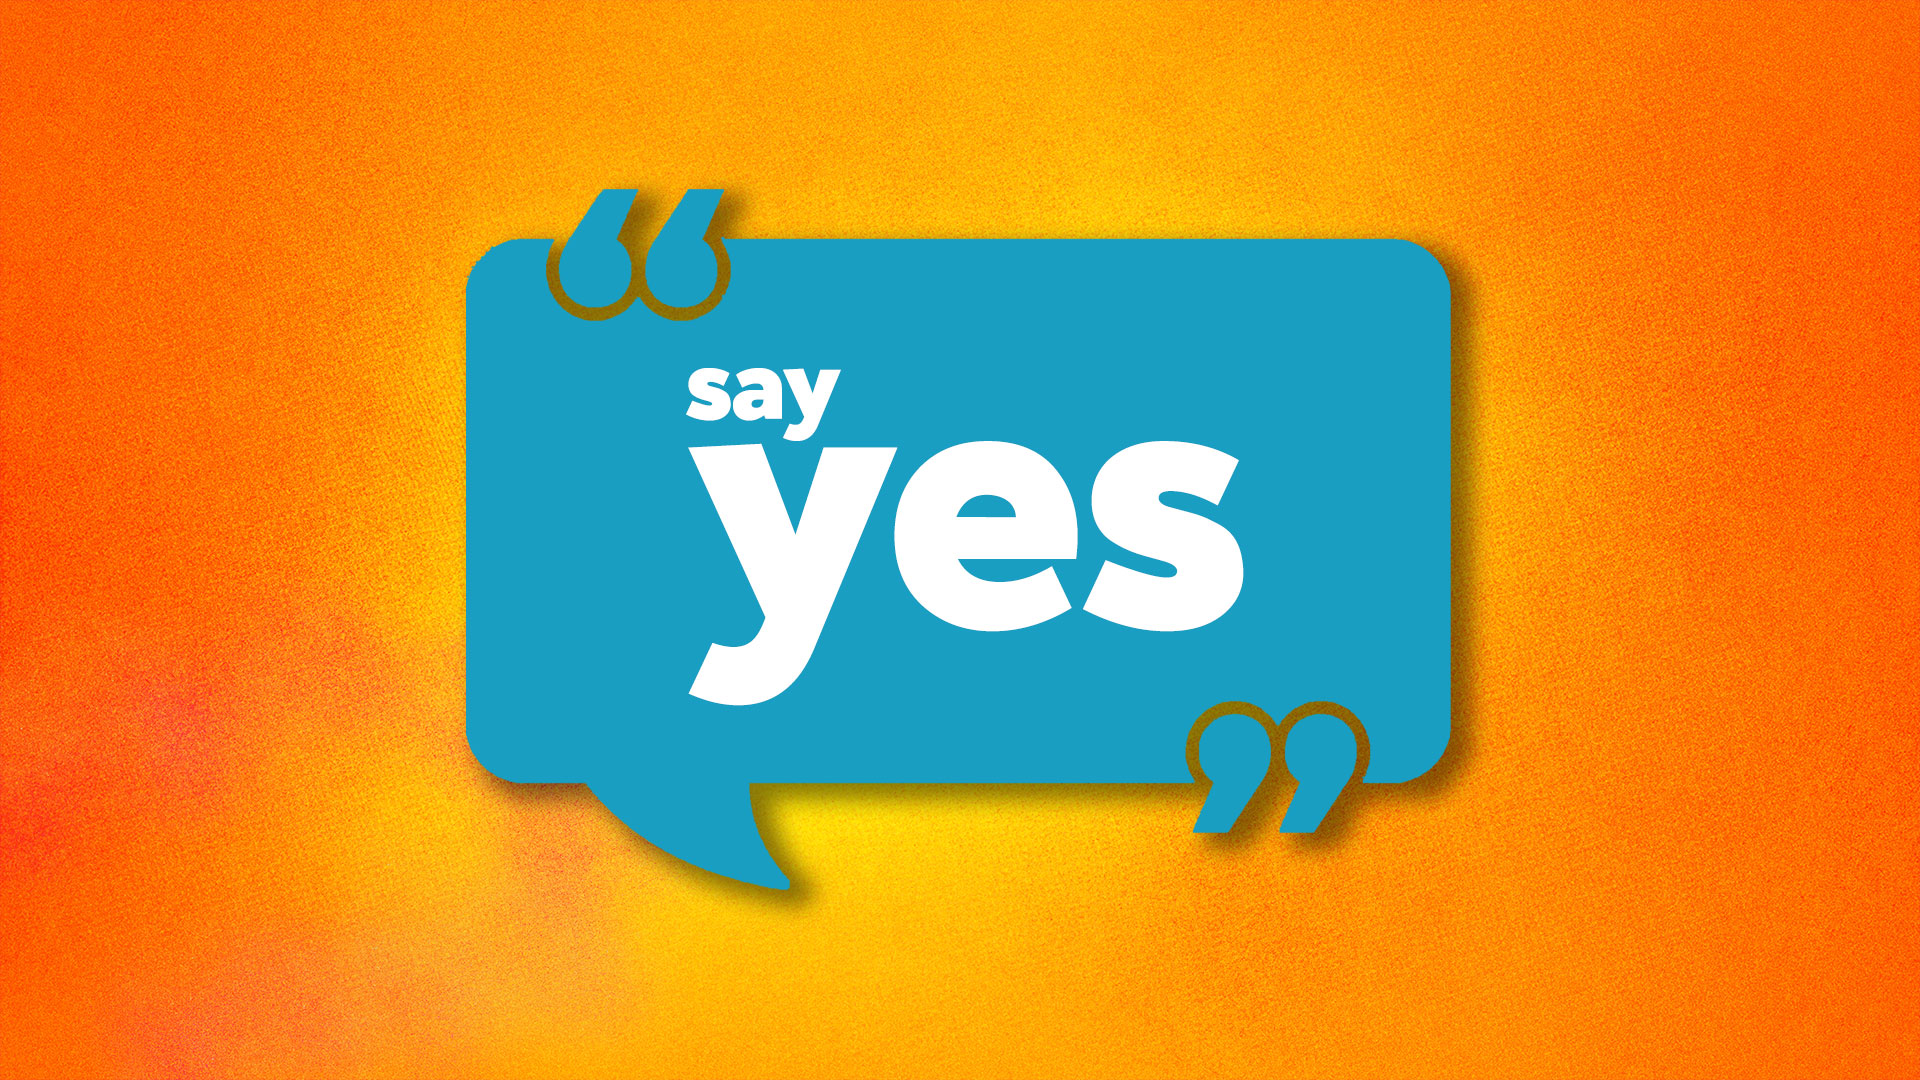 Say Yes (Wk 3): 'TRUSTING, GIVING, SERVING'